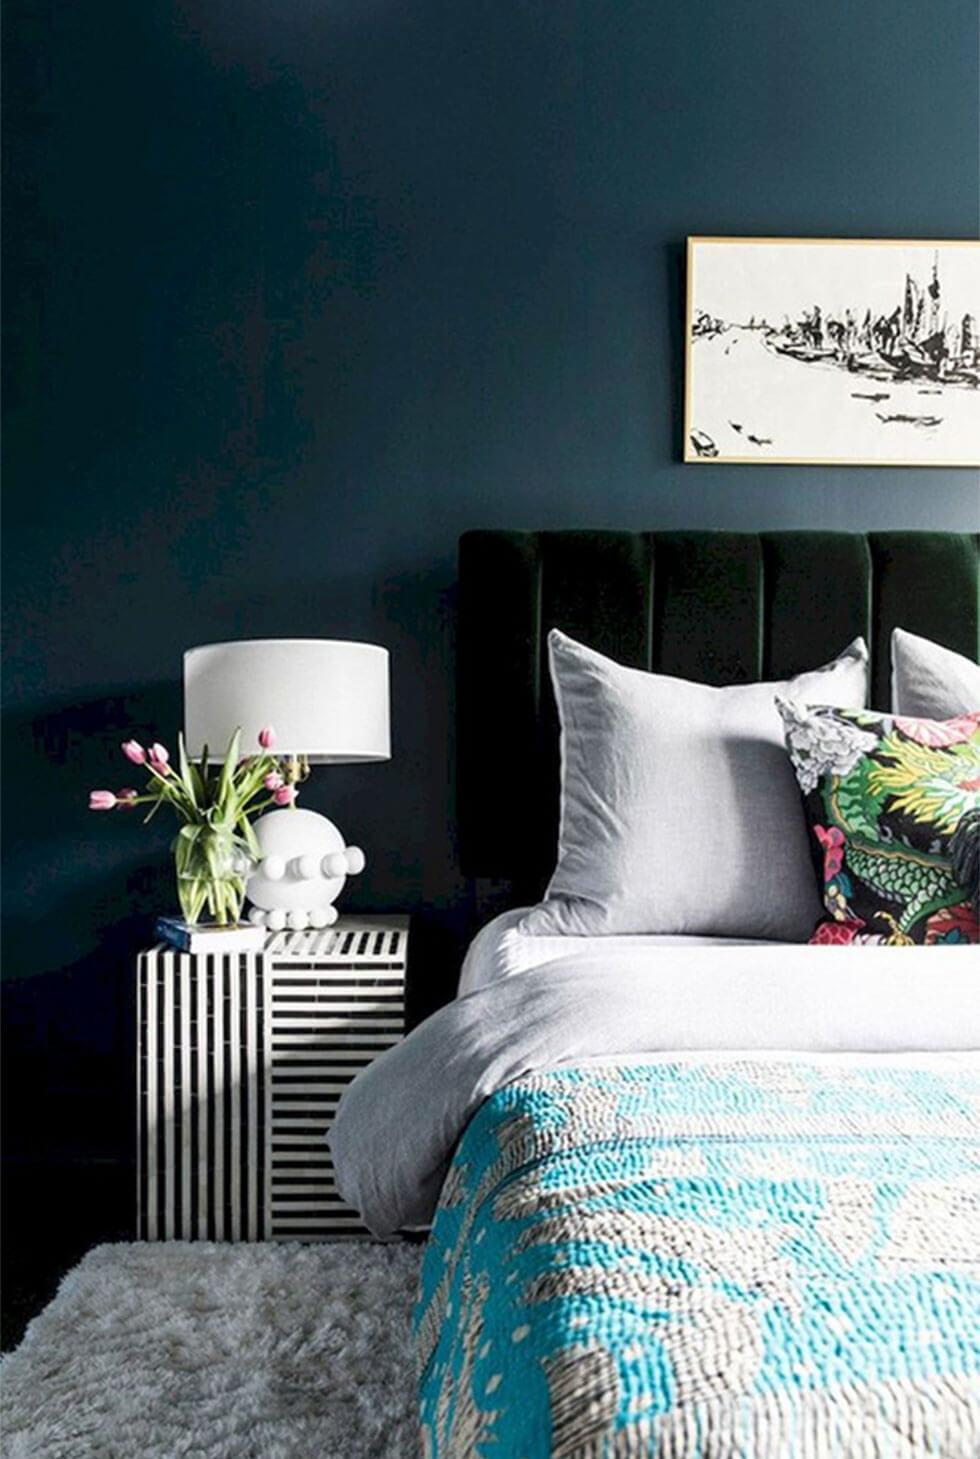 A bedroom wall painted in deep navy blue with an emerald velvet headboard and light coloured bedding.